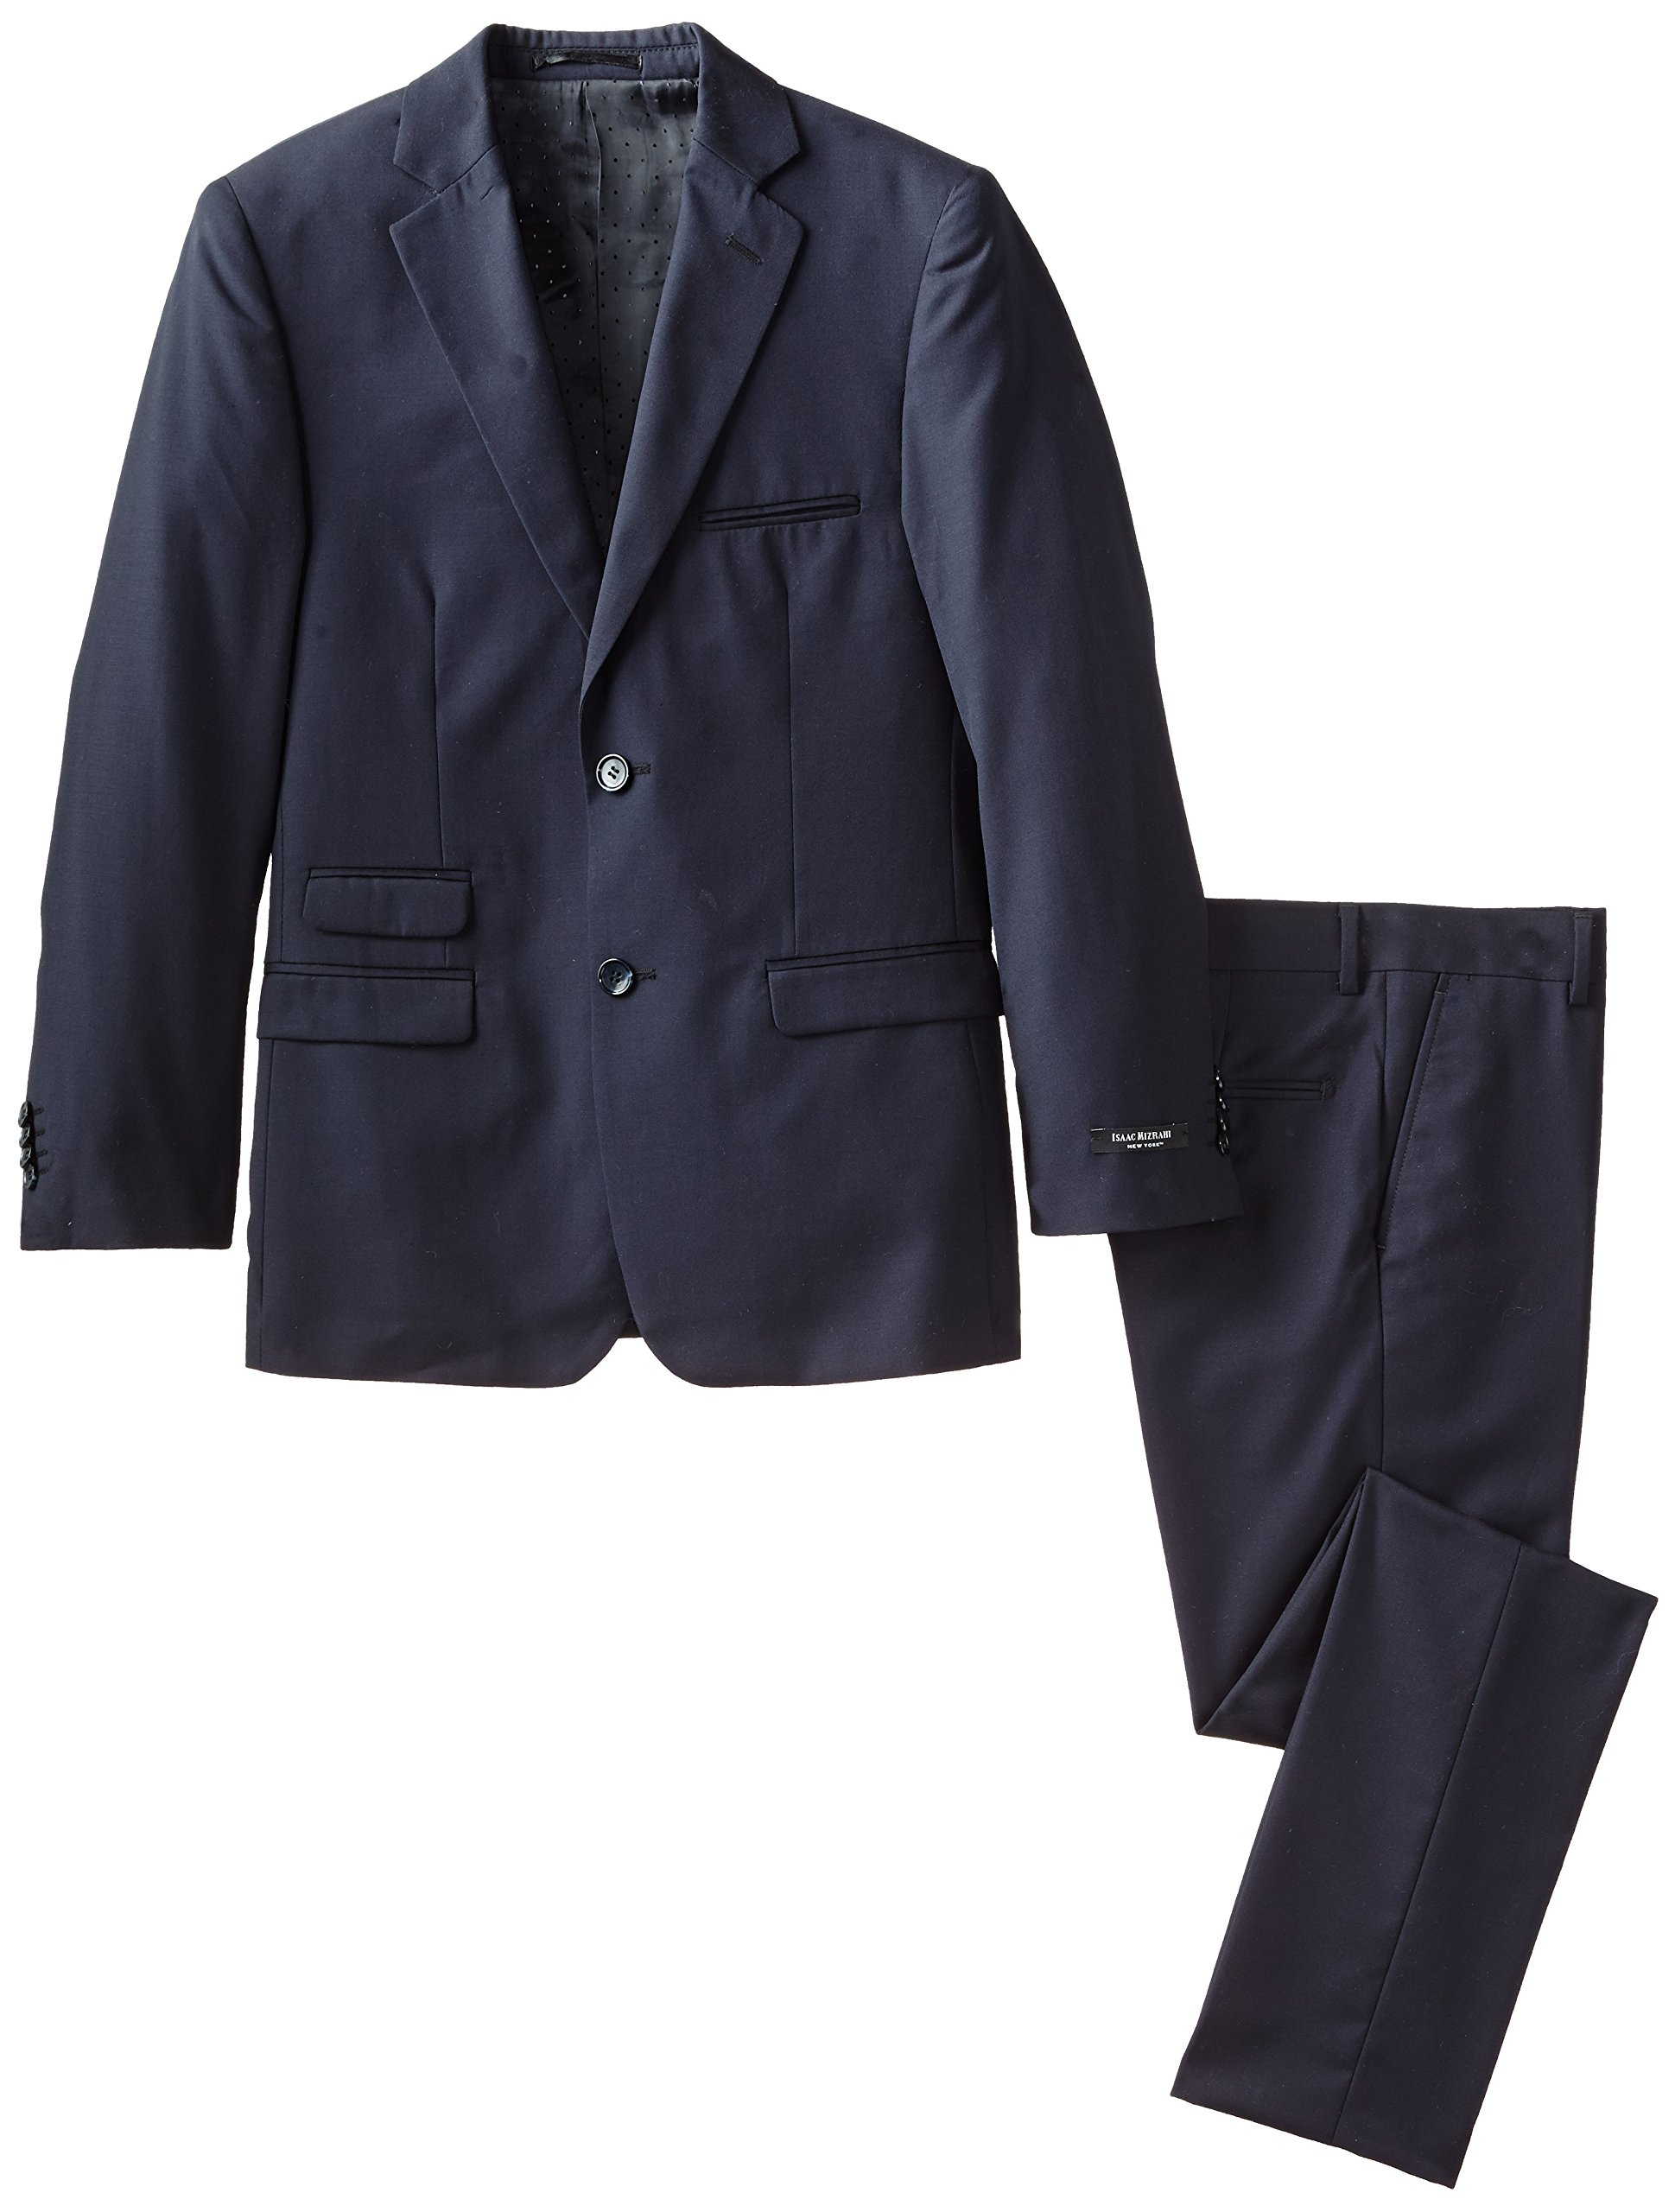 Isaac Mizrahi Black Label Big Boys' Slim Fit Wool 2 Piece Solid Suit, Navy, 10